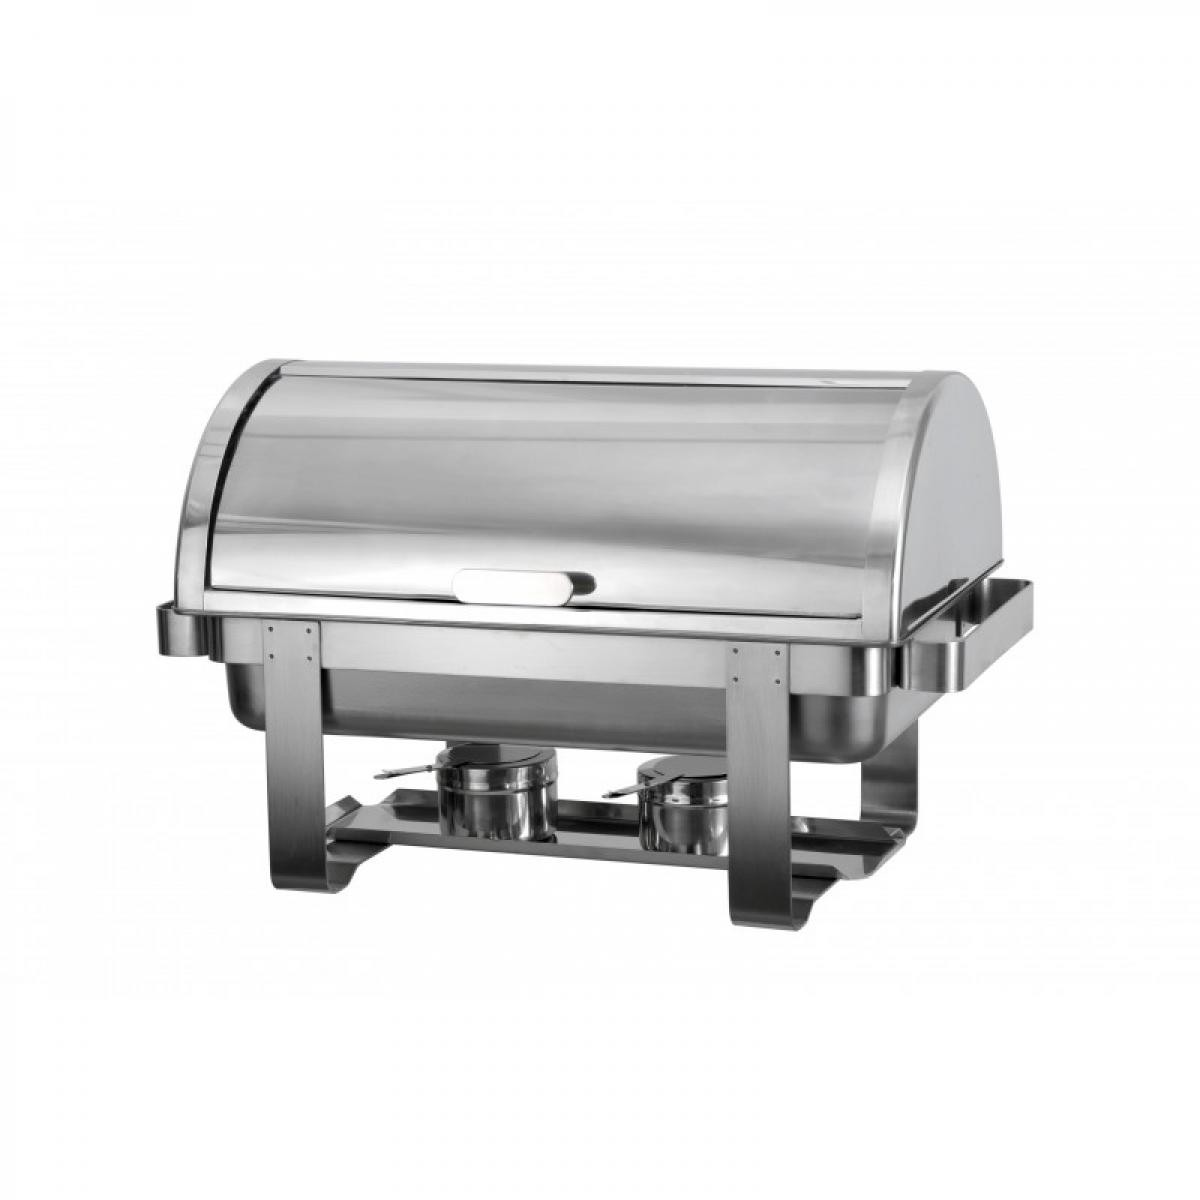 Atosa Chafing dish GN1/1 avec couvercle rabattable 90° - Atosa -